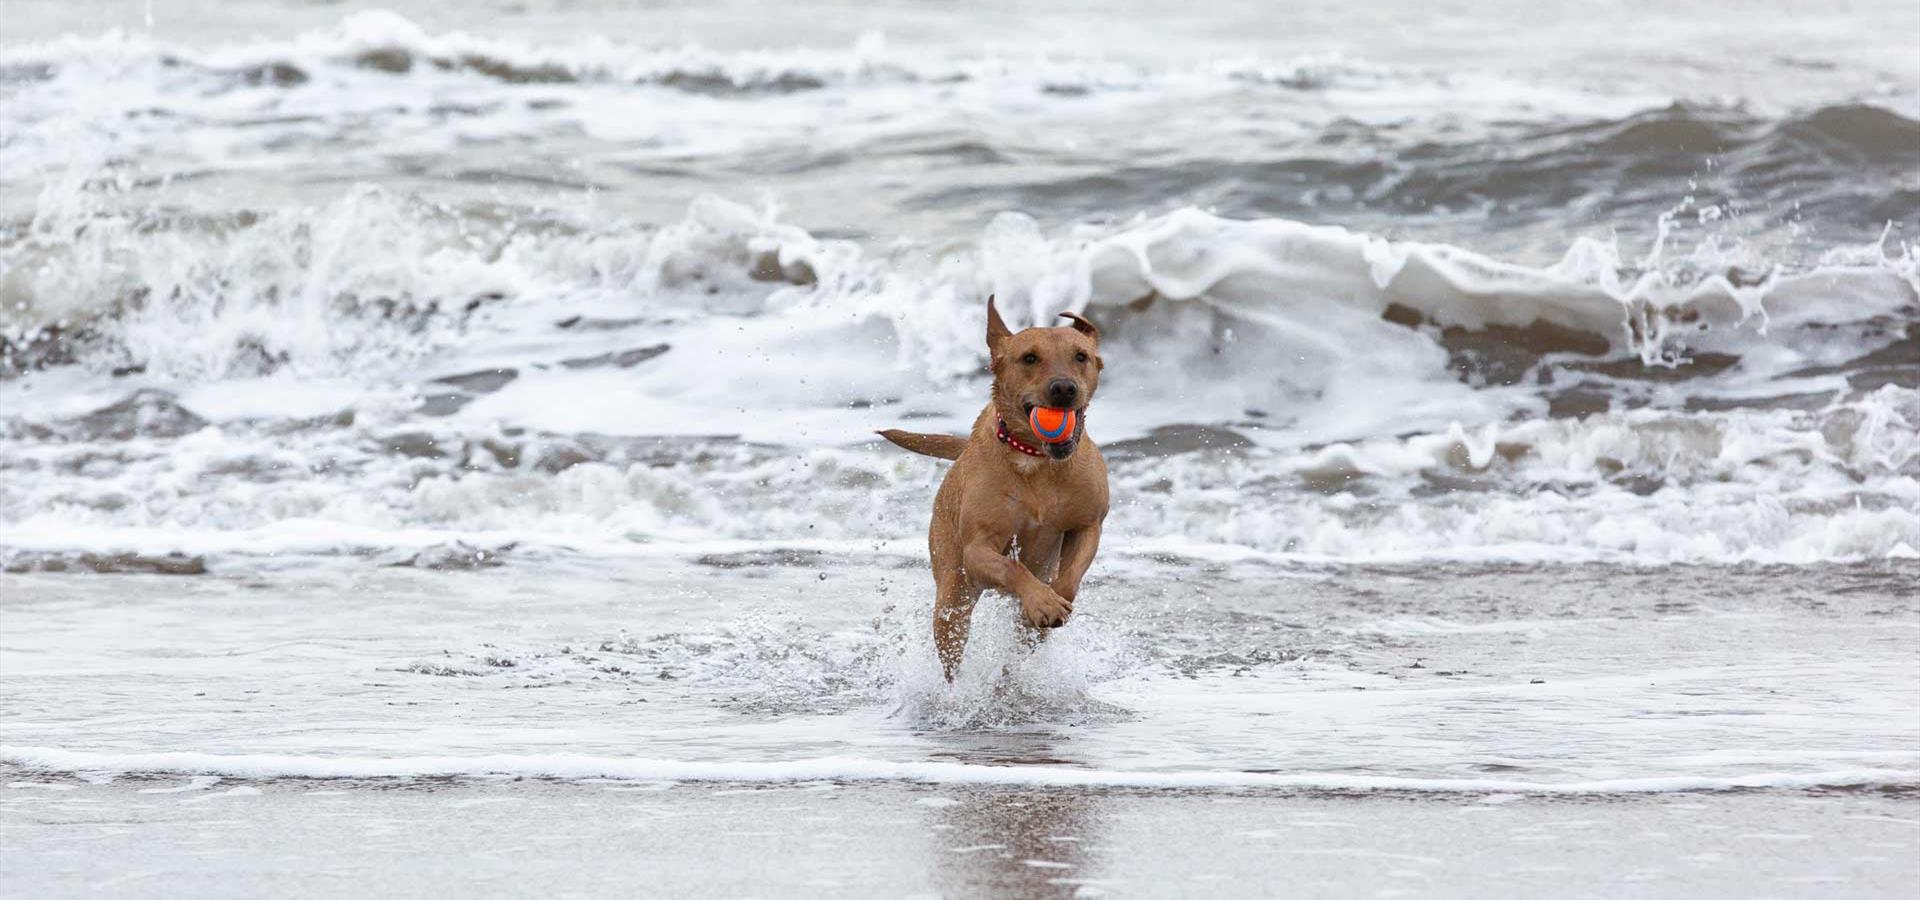 An image of A dog playing in the sea - By Ravage Productions